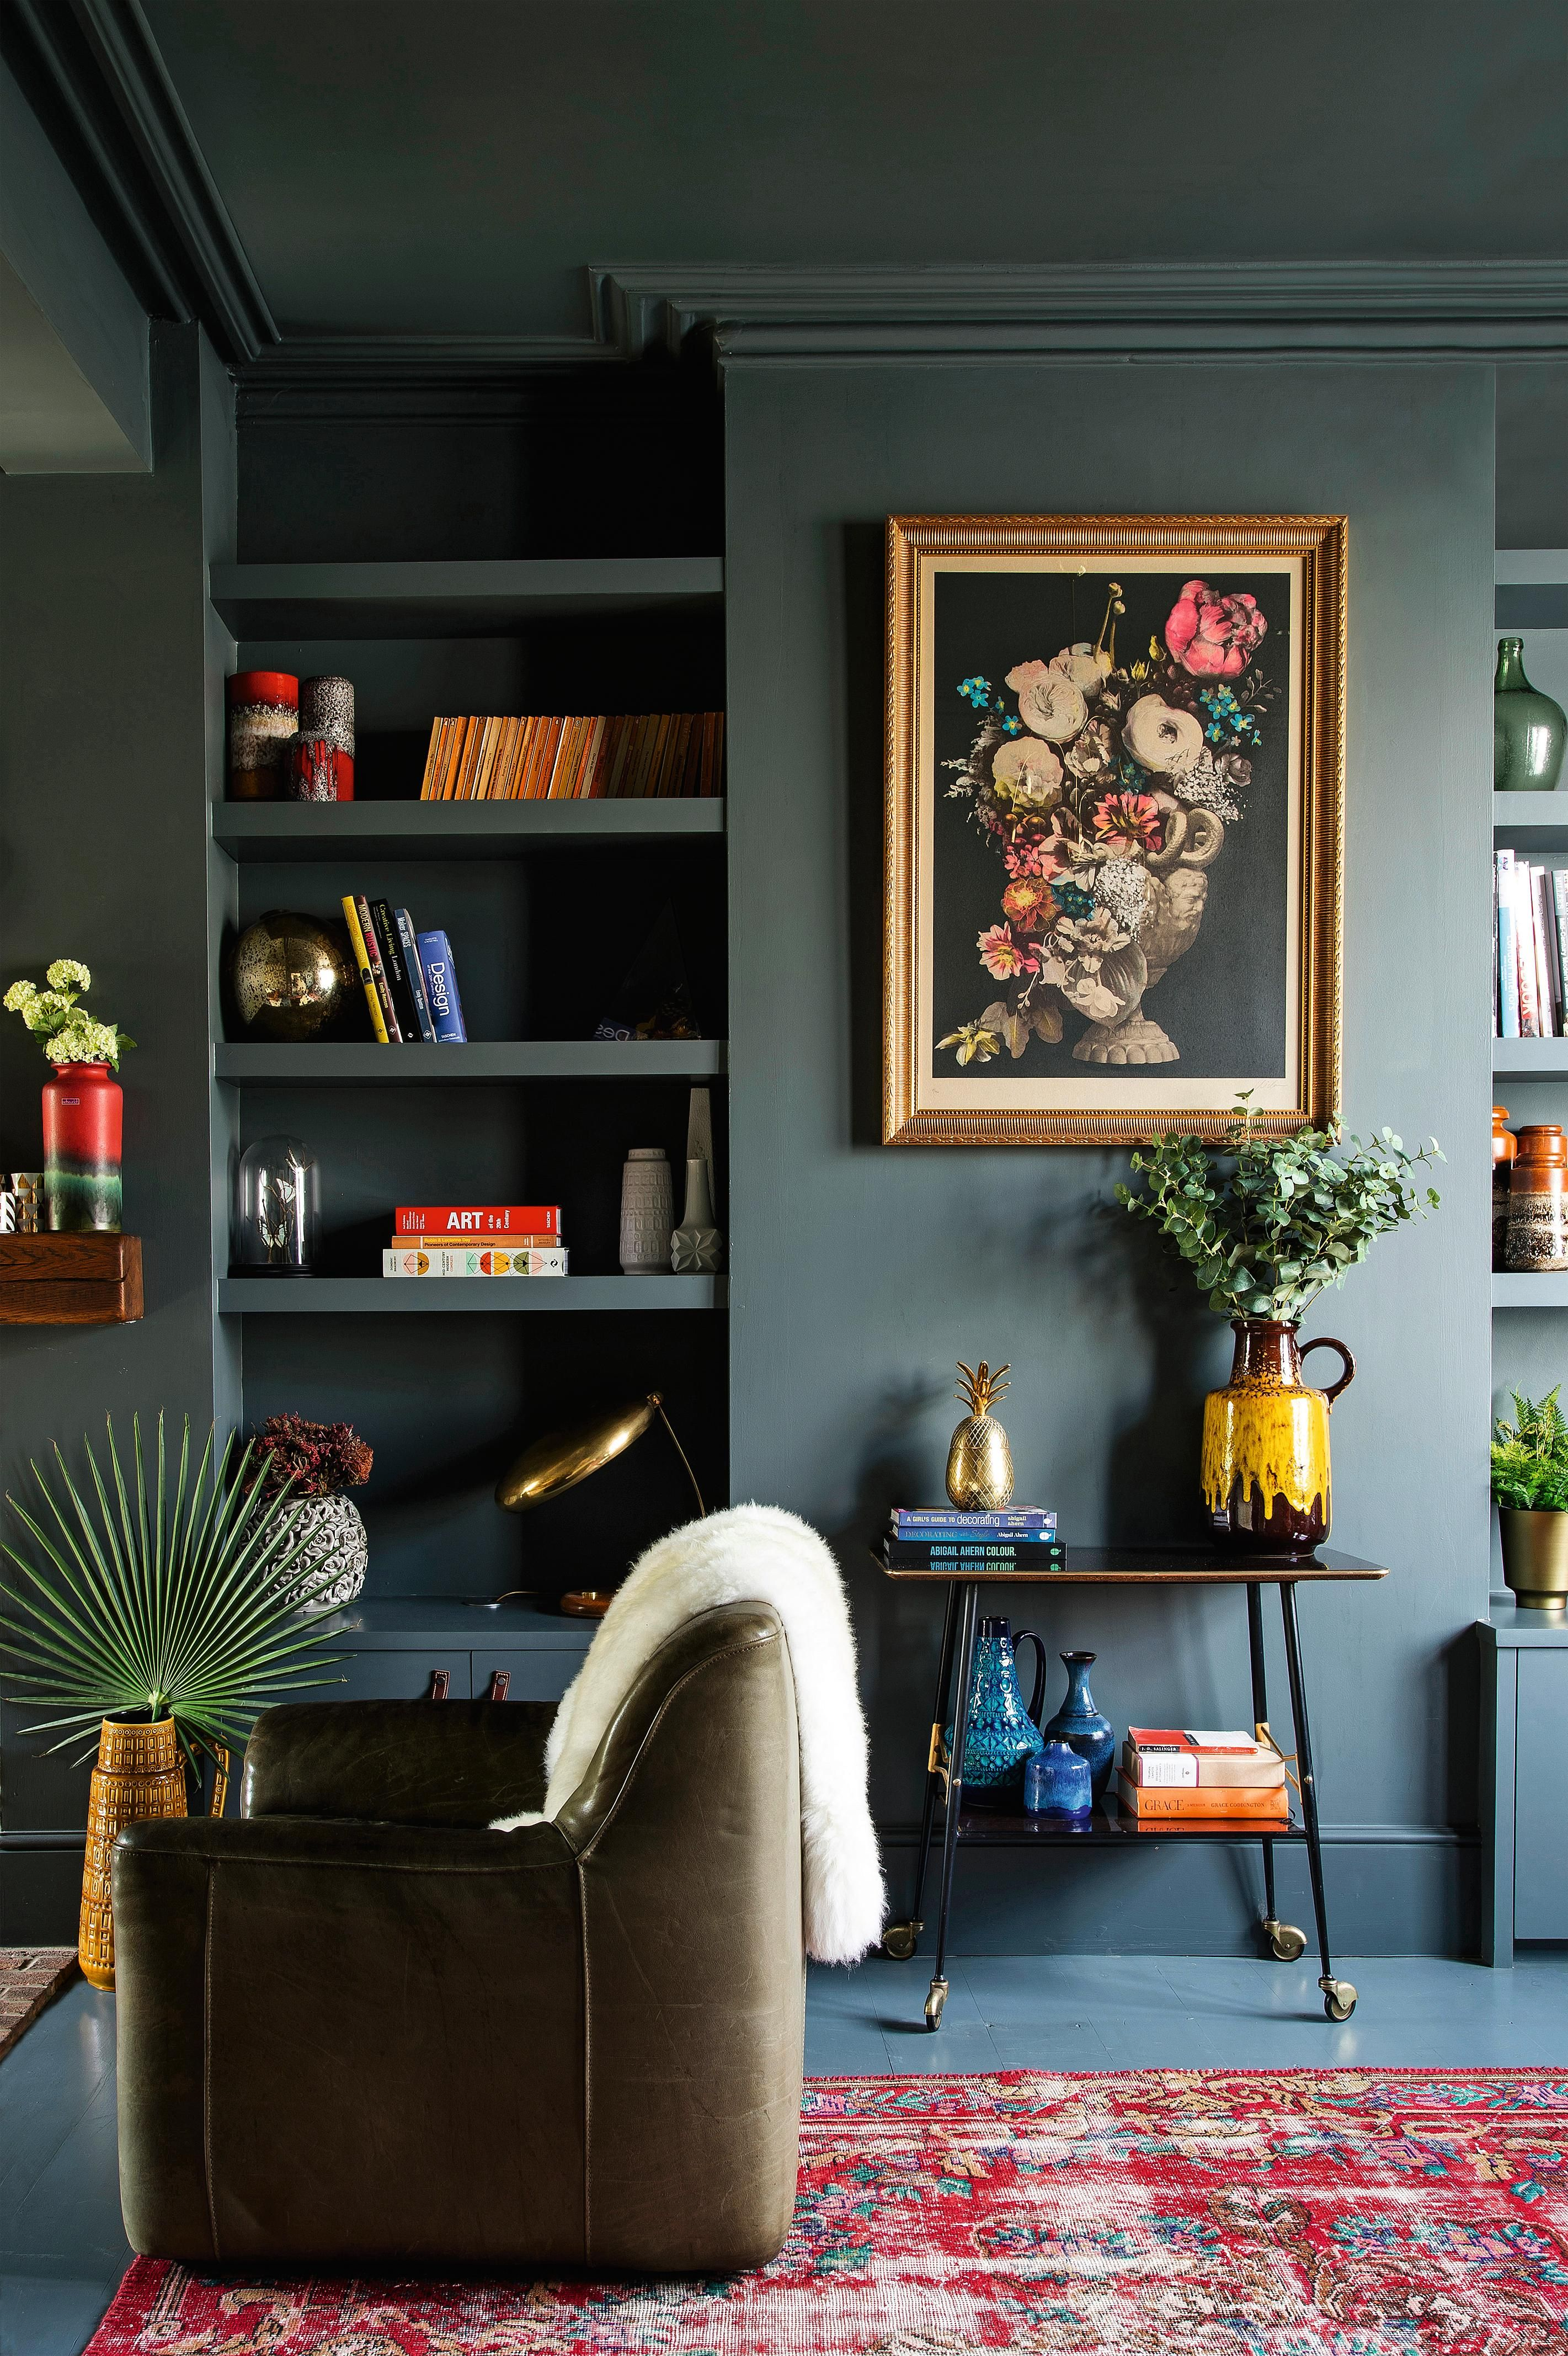 Why dark grey is a bright idea for interiors paint the woodwork the same colour as the walls for a sophisticated look add a mix of quirky and eclectic